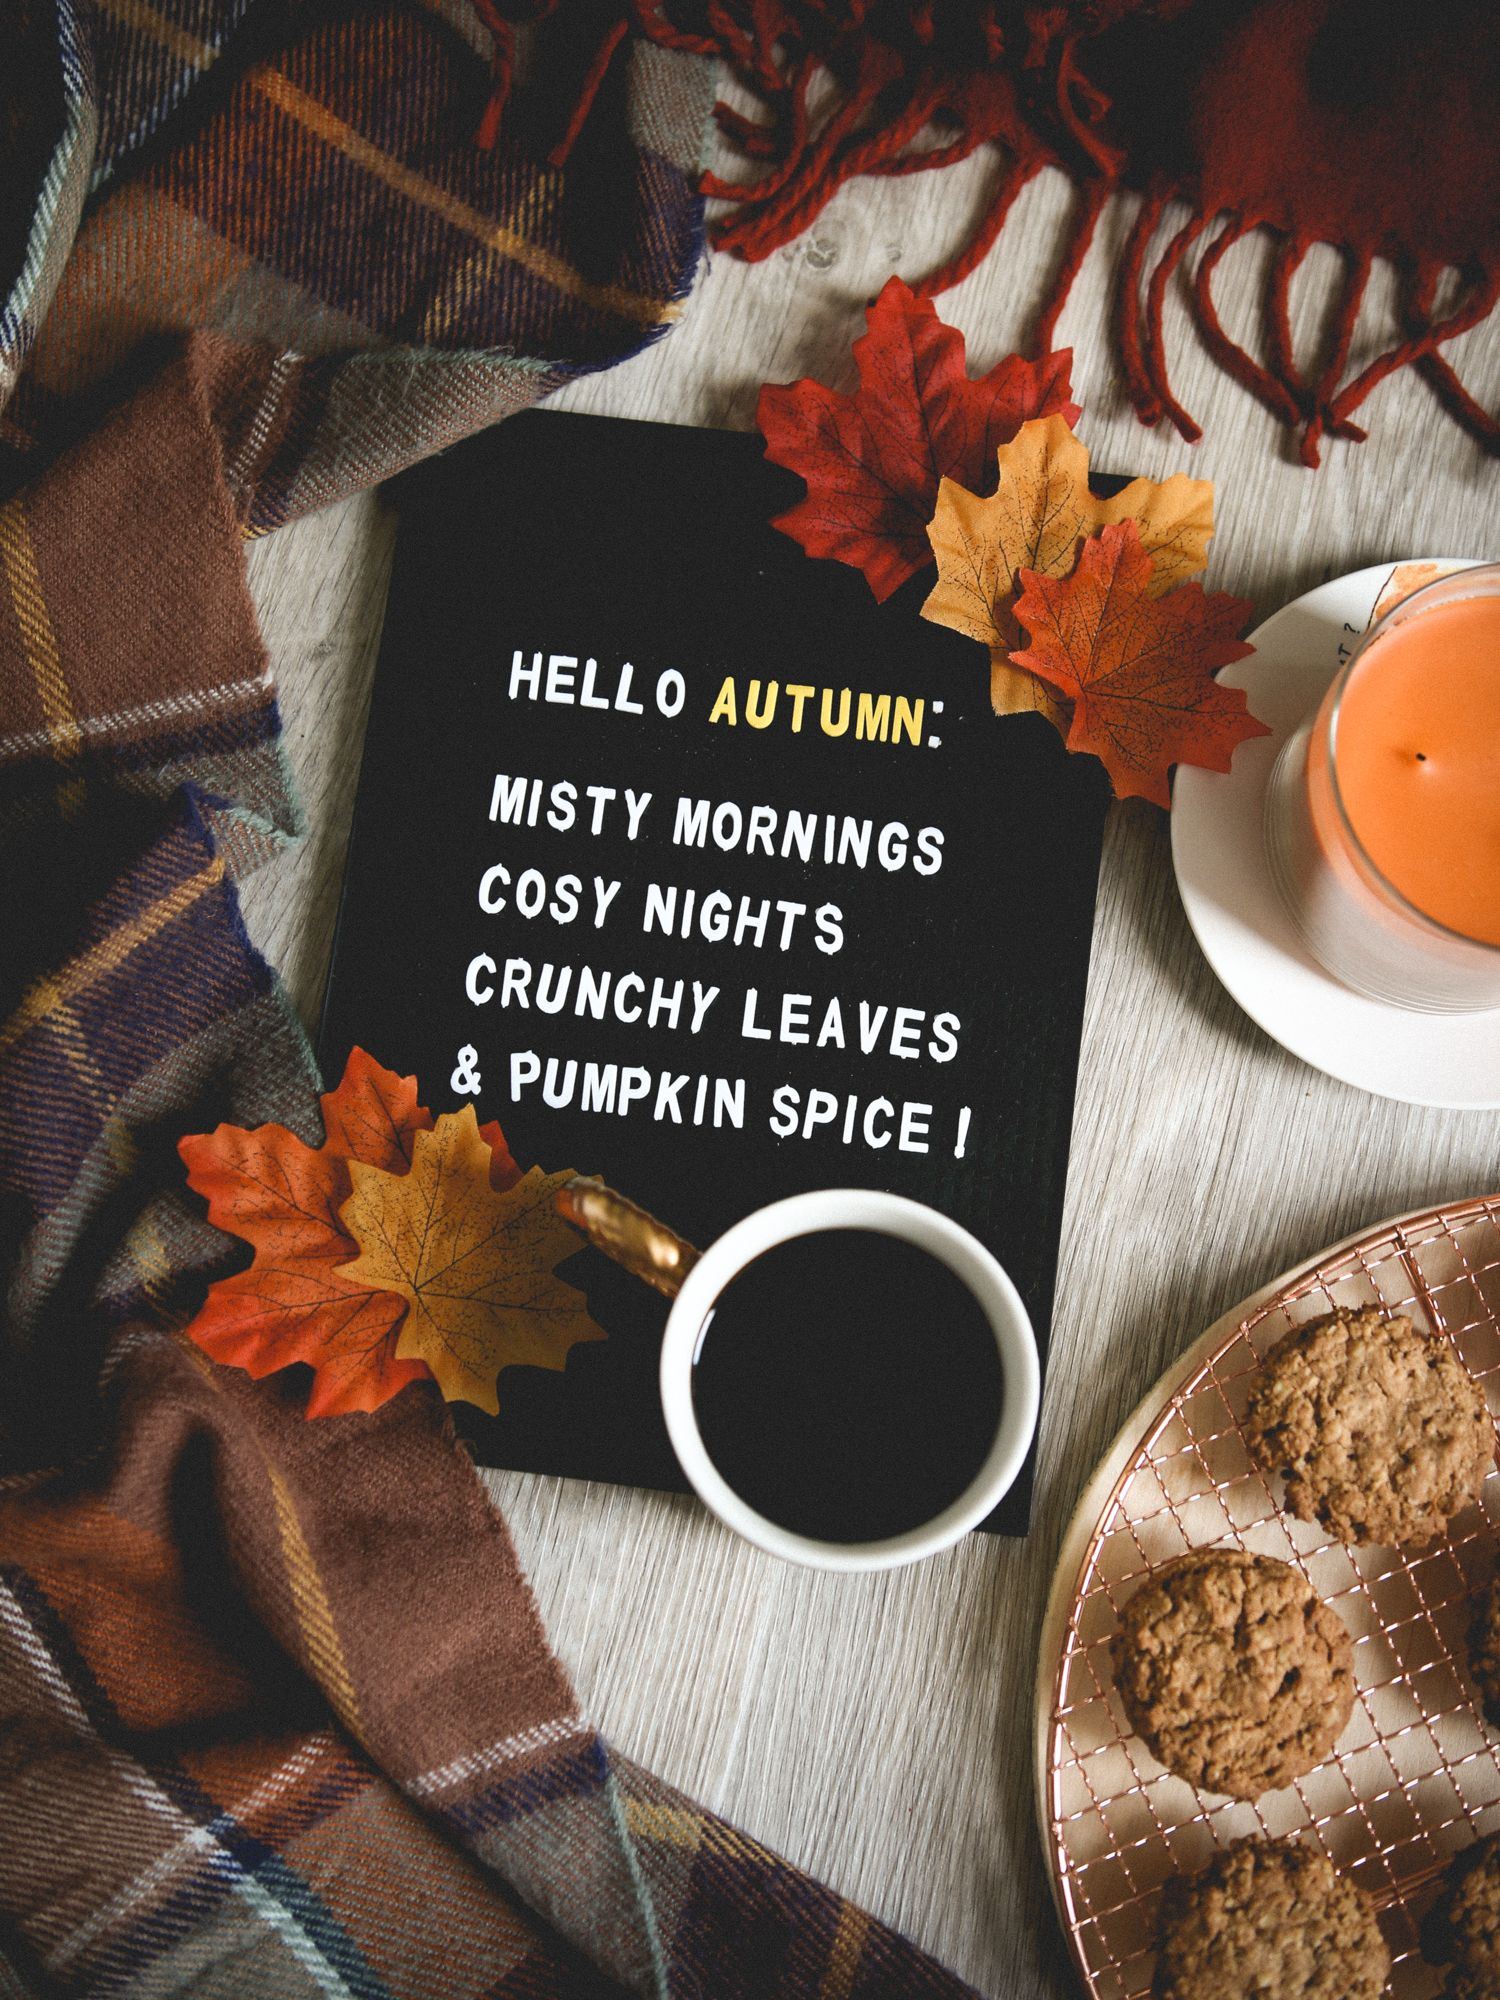 Hello autumn, misty mornings, cozy nights, crunchy leaves, and pumpkin spice! | fall aesthetic filled with colorful leaves, plaid blankets, candles, cookies #helloautumn